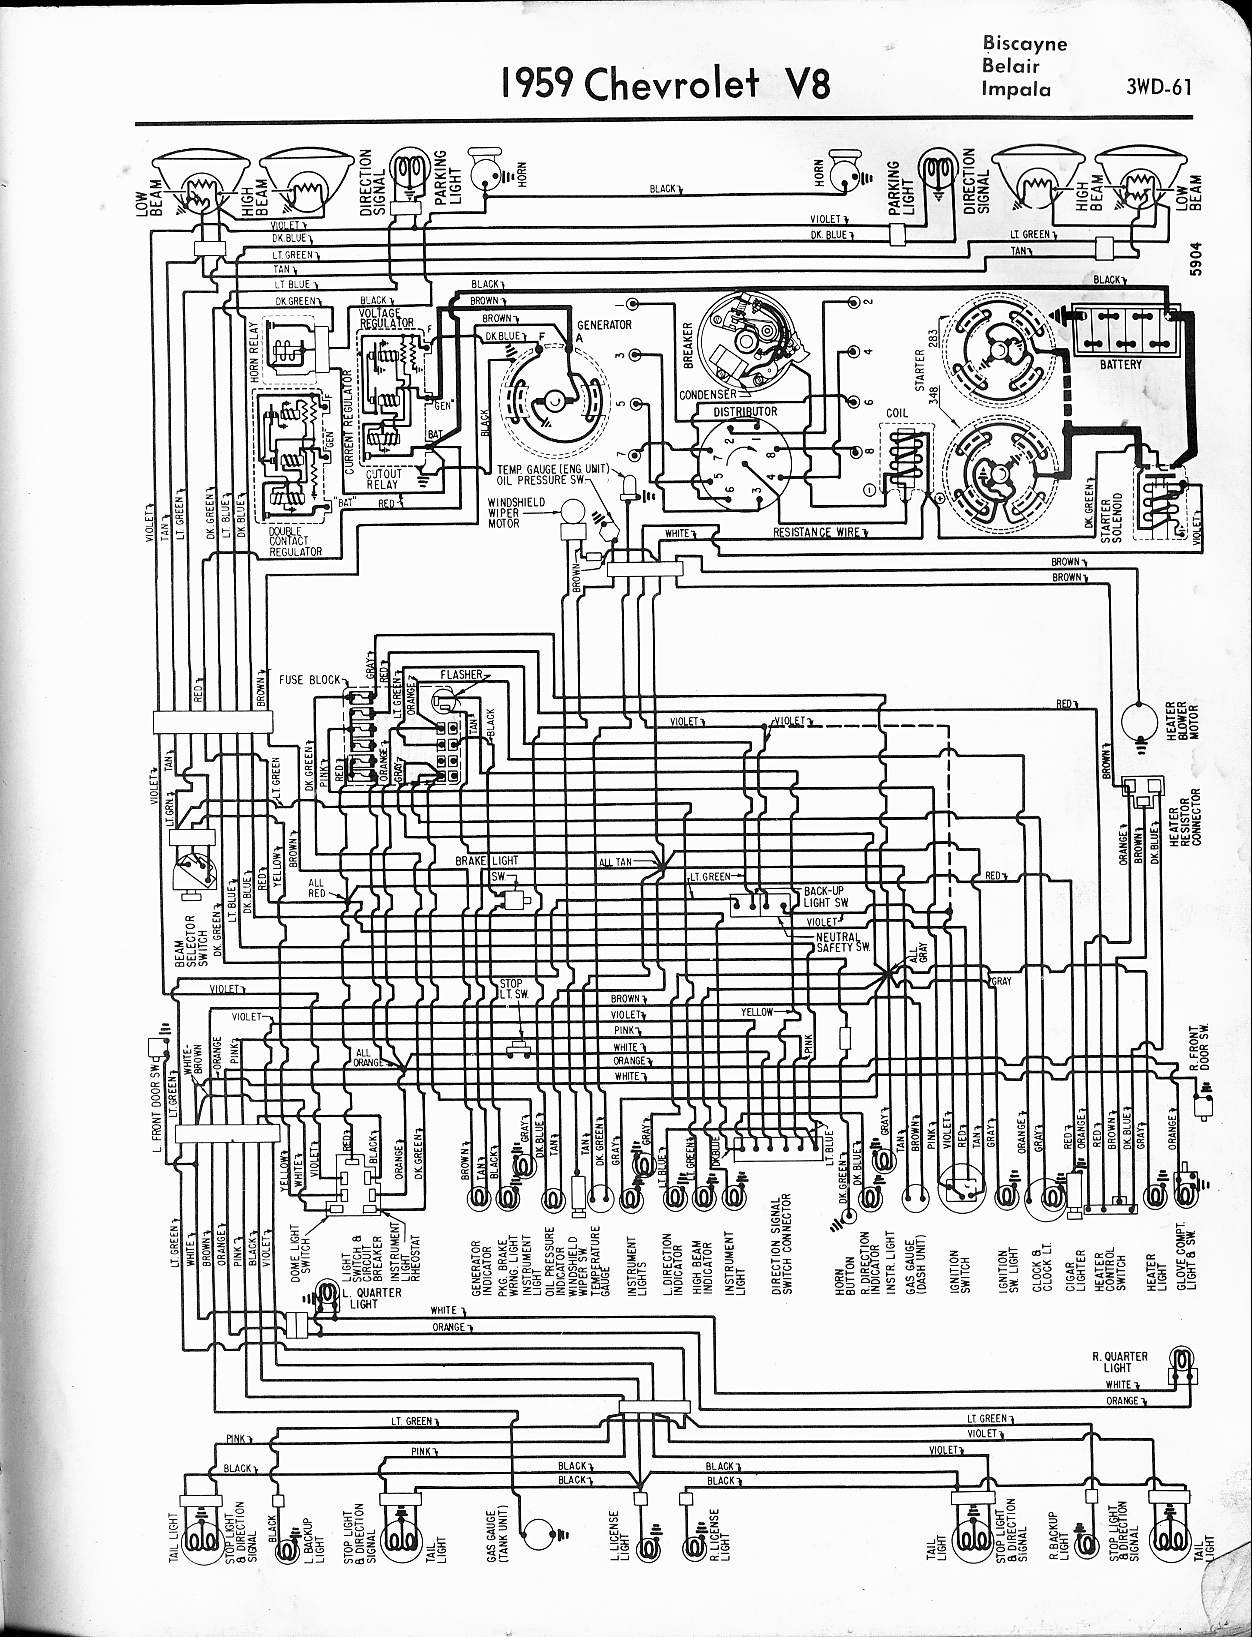 Wiring Diagram For 57 Chevy V8 Library 2006 Hayabusa Moreover Chinese Atv Diagrams Also 1959 Truck 65 Collection Of